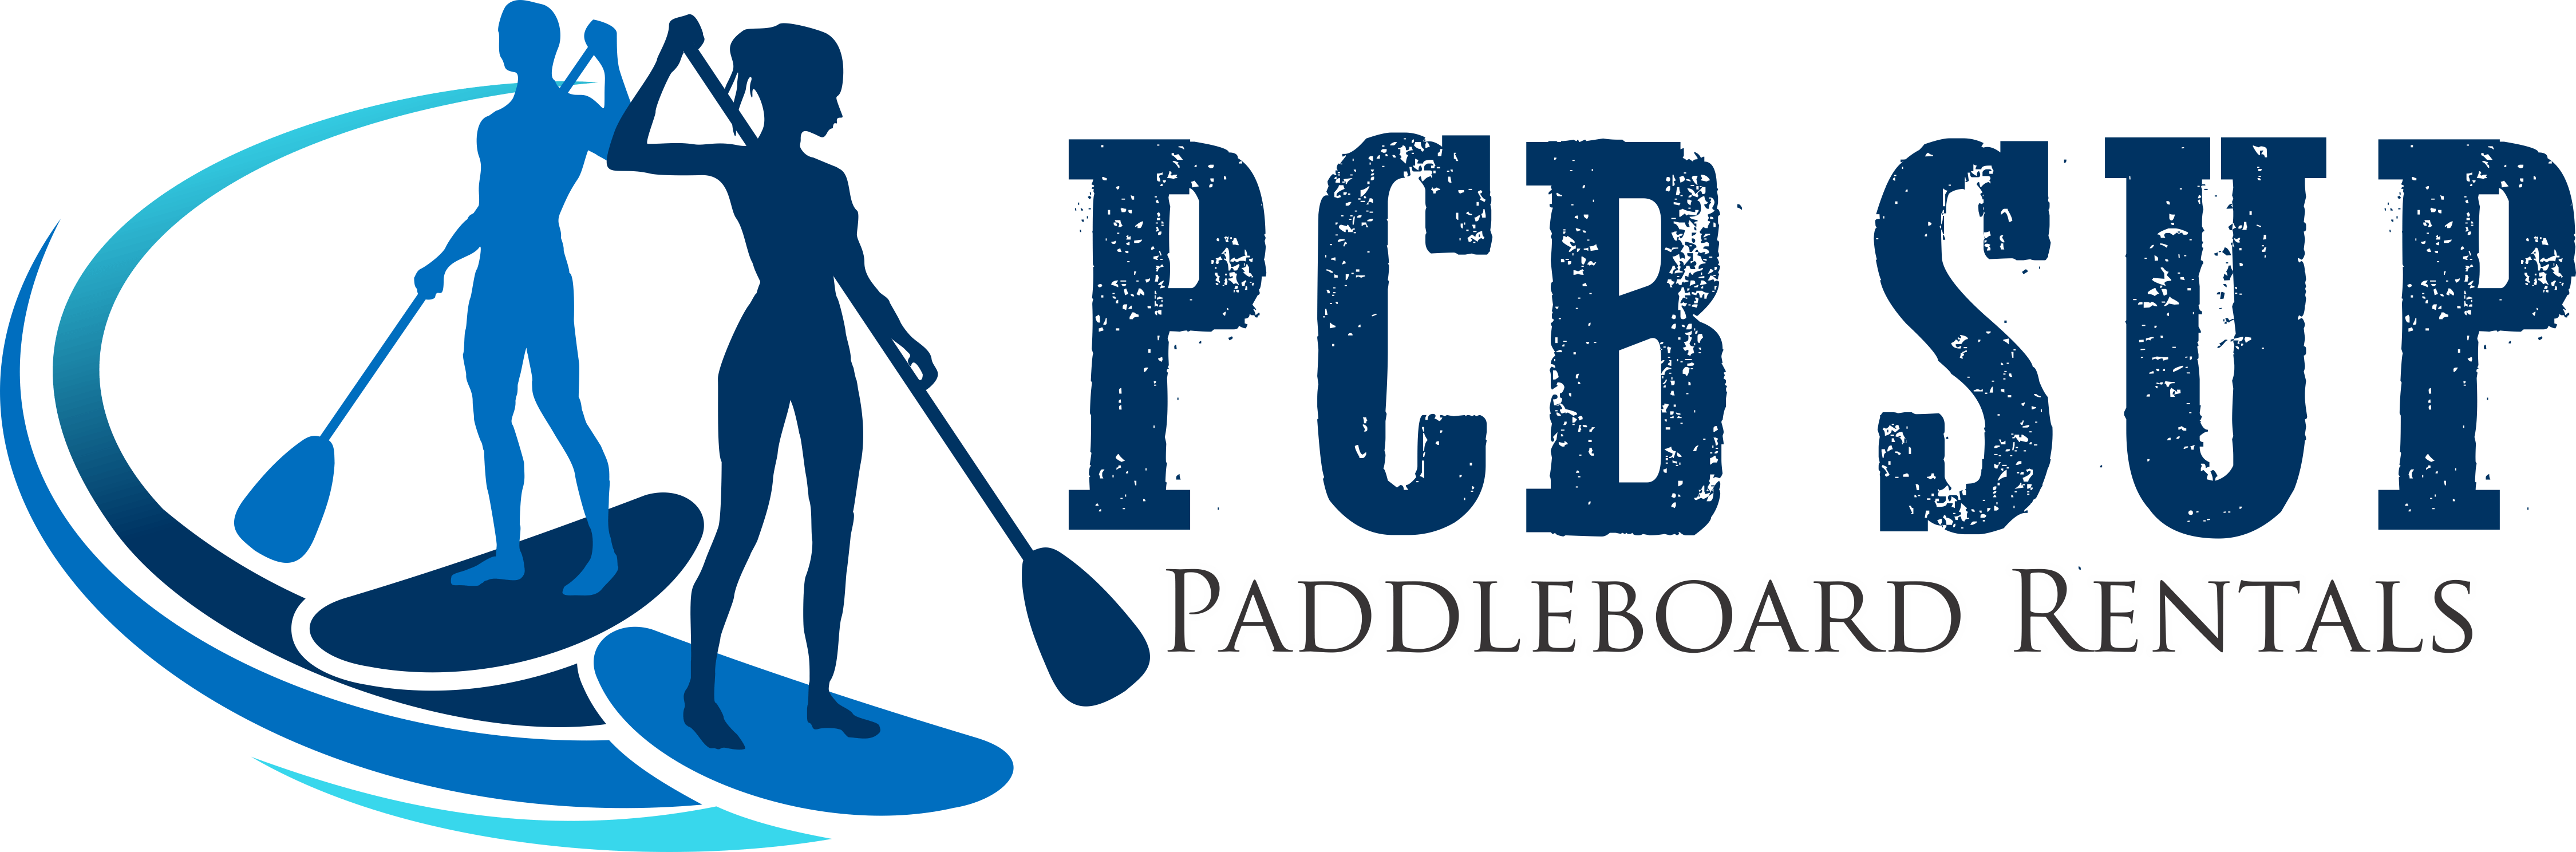 Panama City Beach Stand Up Paddleboard Rentals, Tours & Fishing Charters. Serving Panama City Beach, 30A, and everything in between!